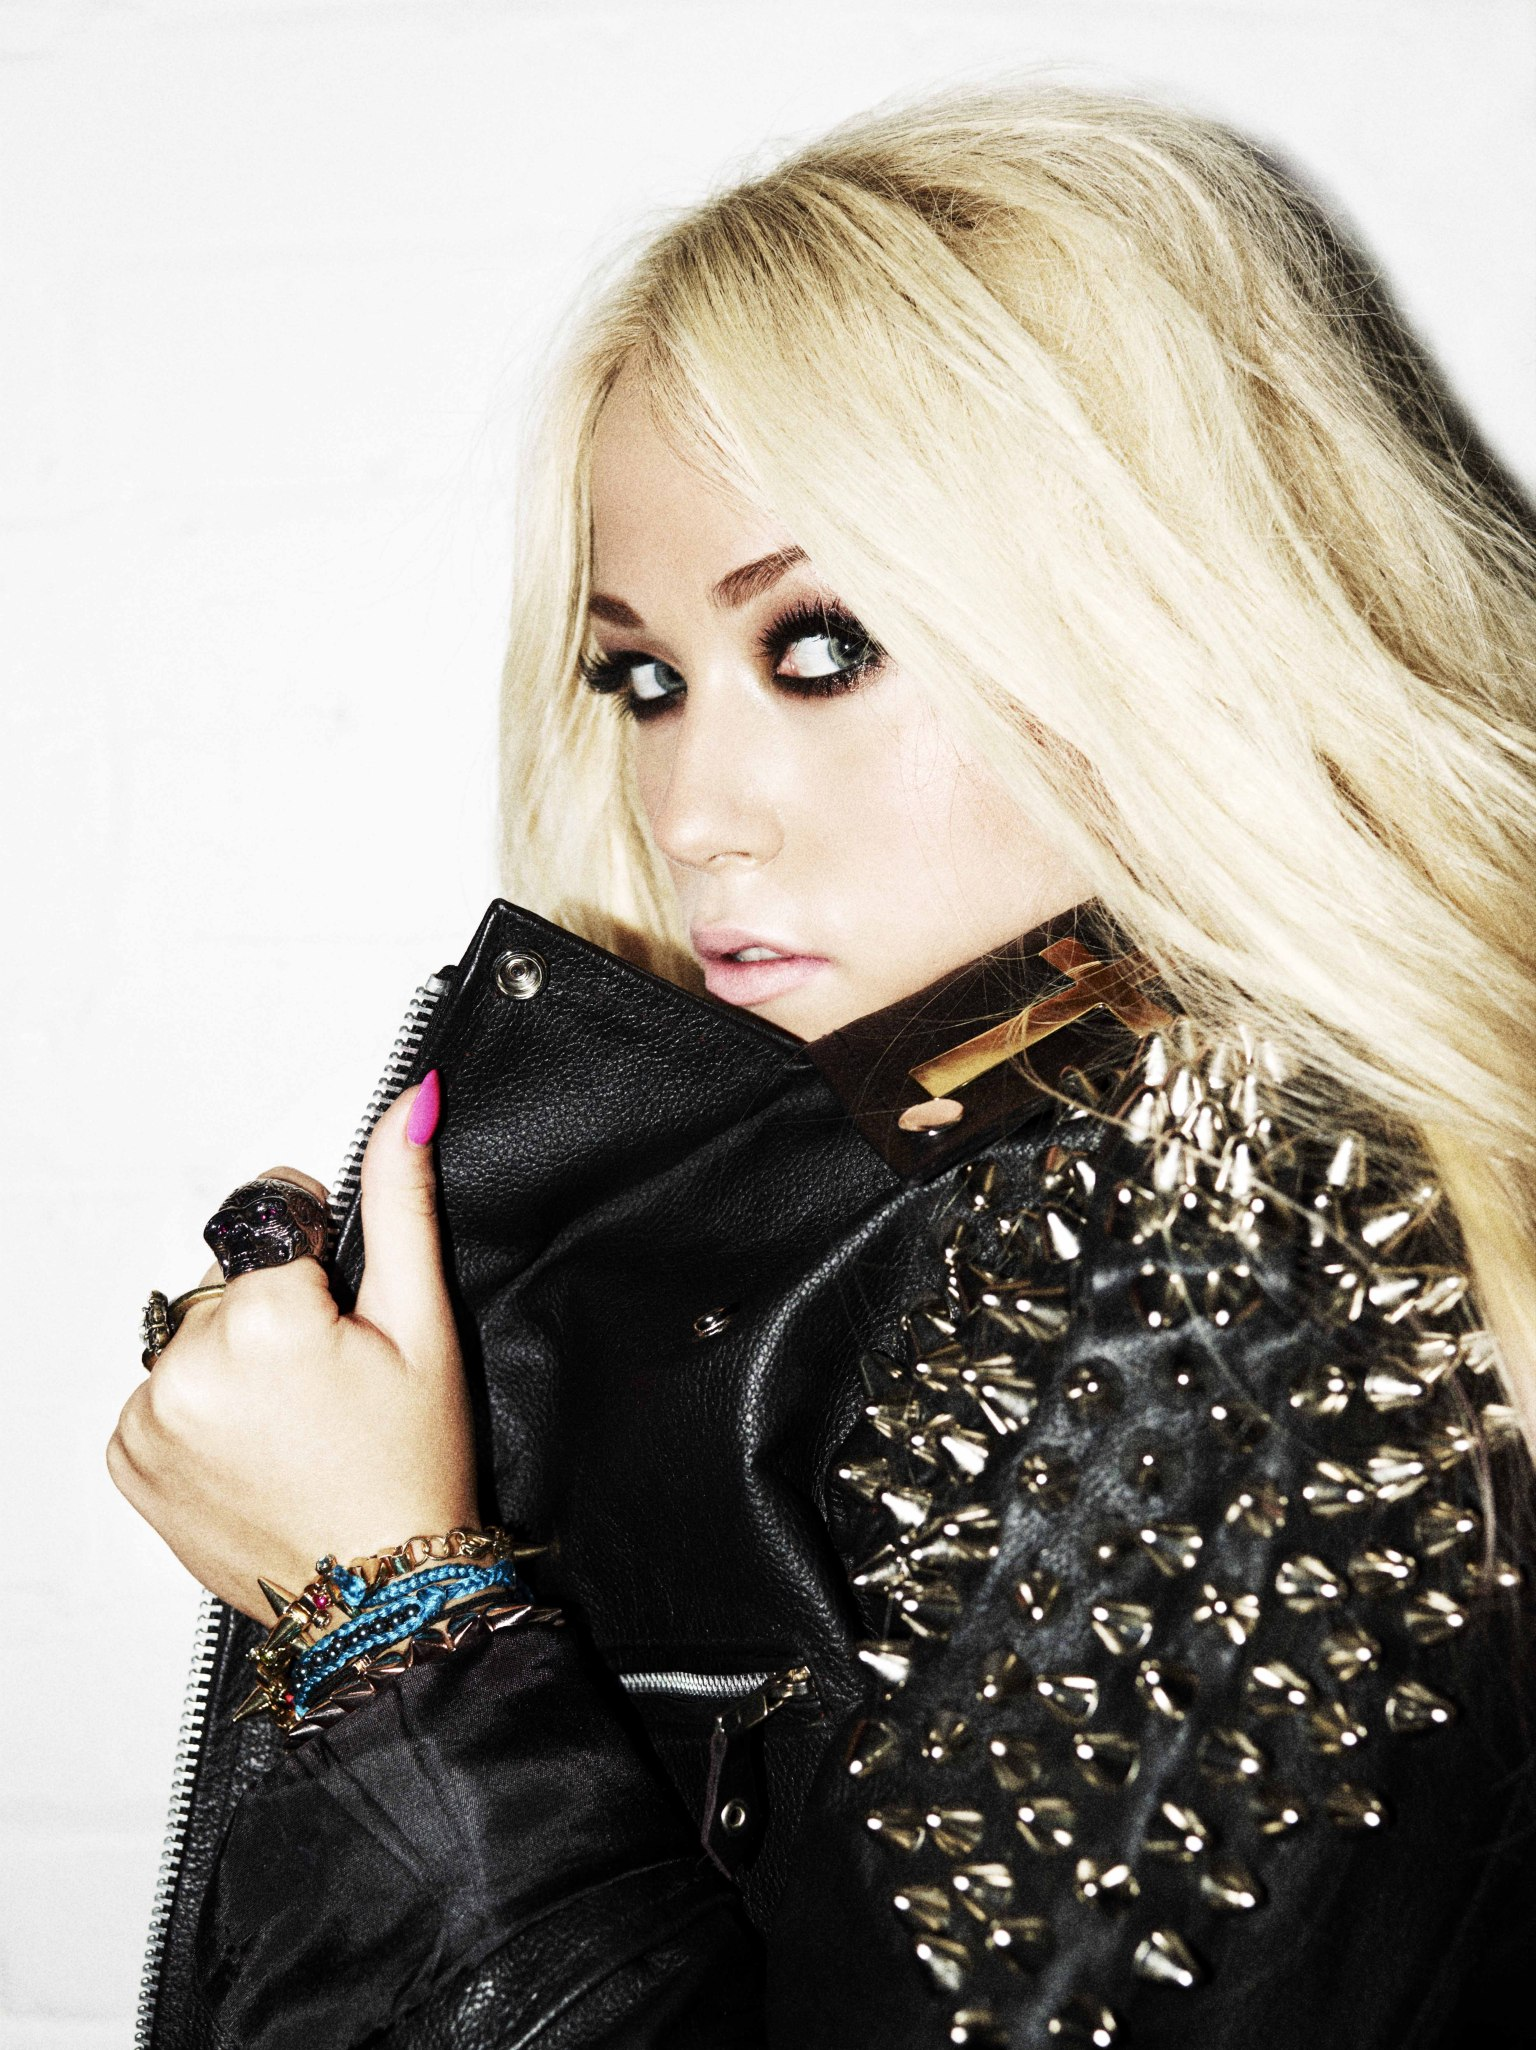 Amelia Lily On Touring With Girls Aloud And Why 'People Can Write What They Want' About Her (INTERVIEW) | HuffPost UK